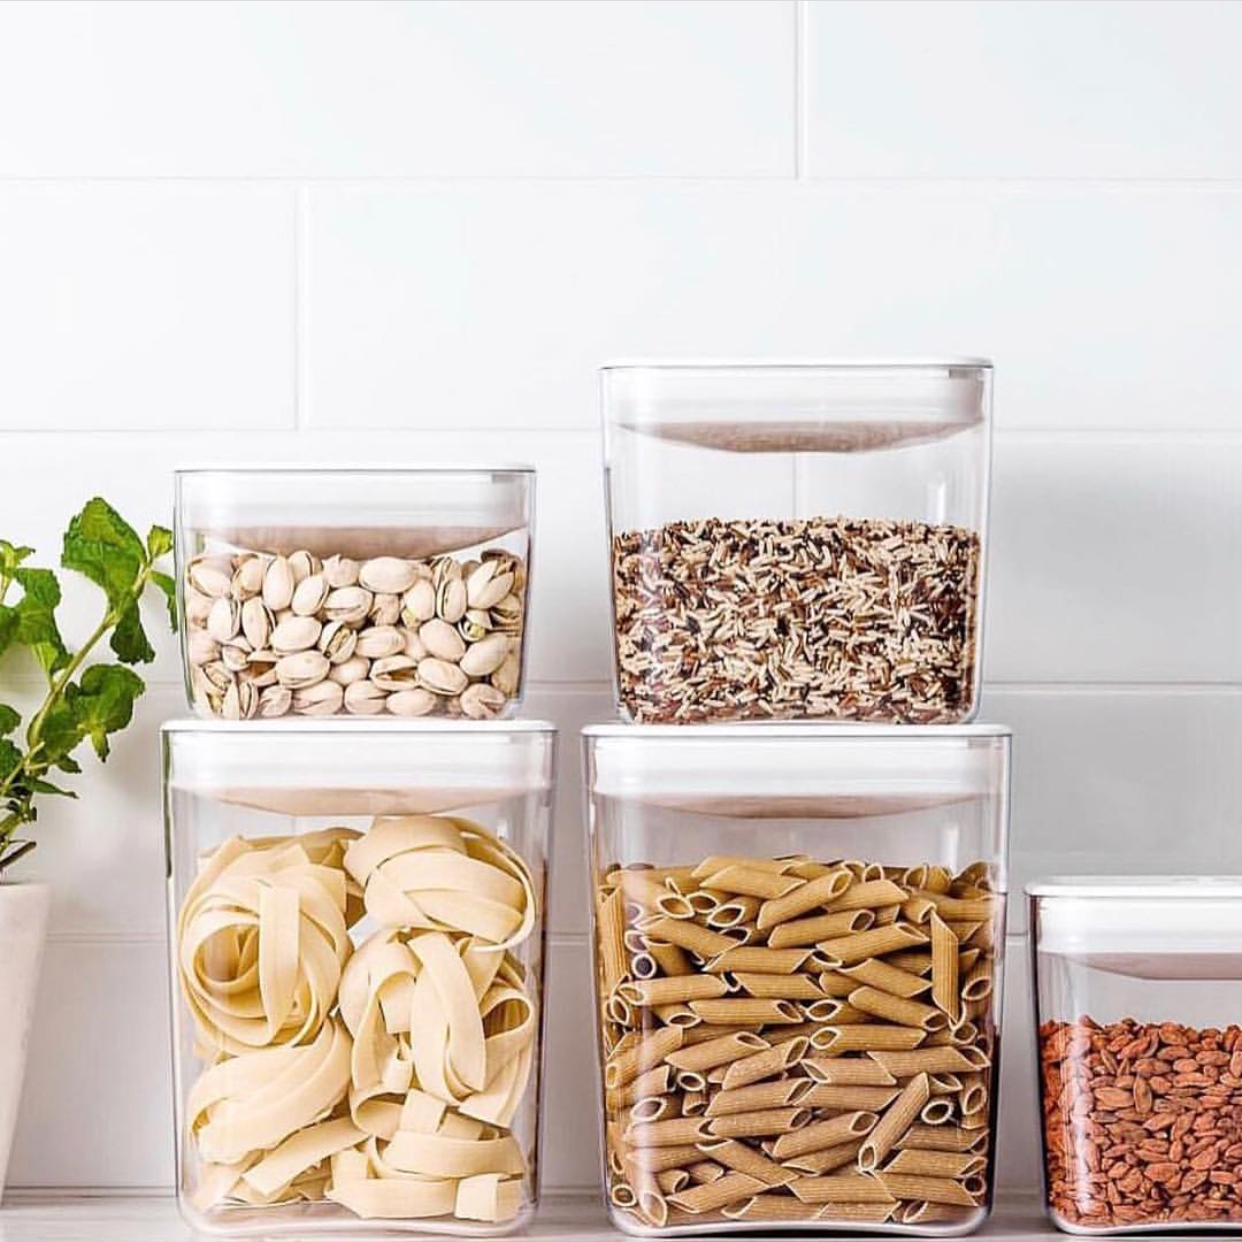 Shop prepared at stores where you can use your own jars & containers to buy in bulk. This not only reduces your waste at home due to removing packaging but it also reduces the cost!